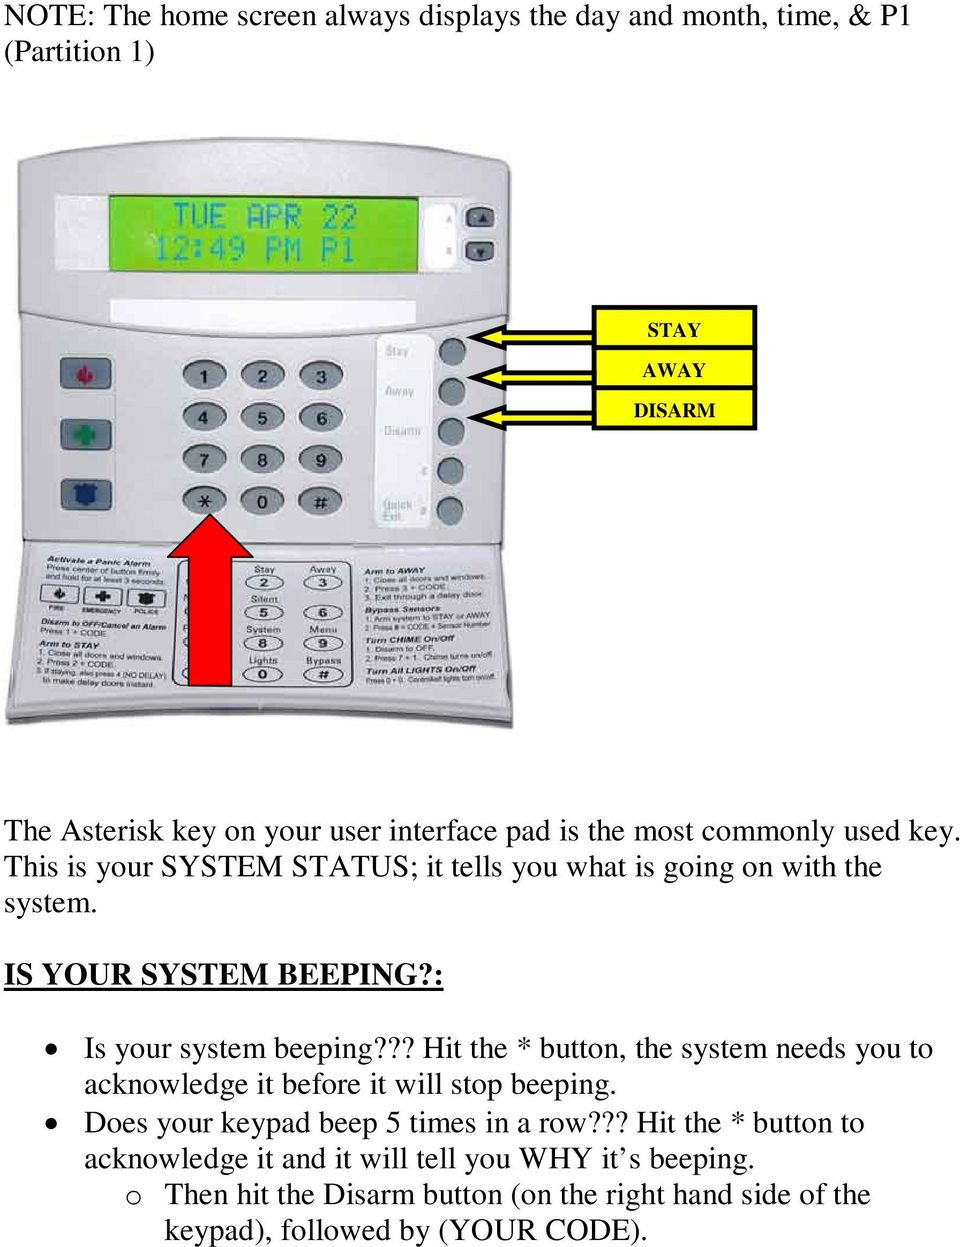 : Is your system beeping??? Hit the * button, the system needs you to acknowledge it before it will stop beeping.